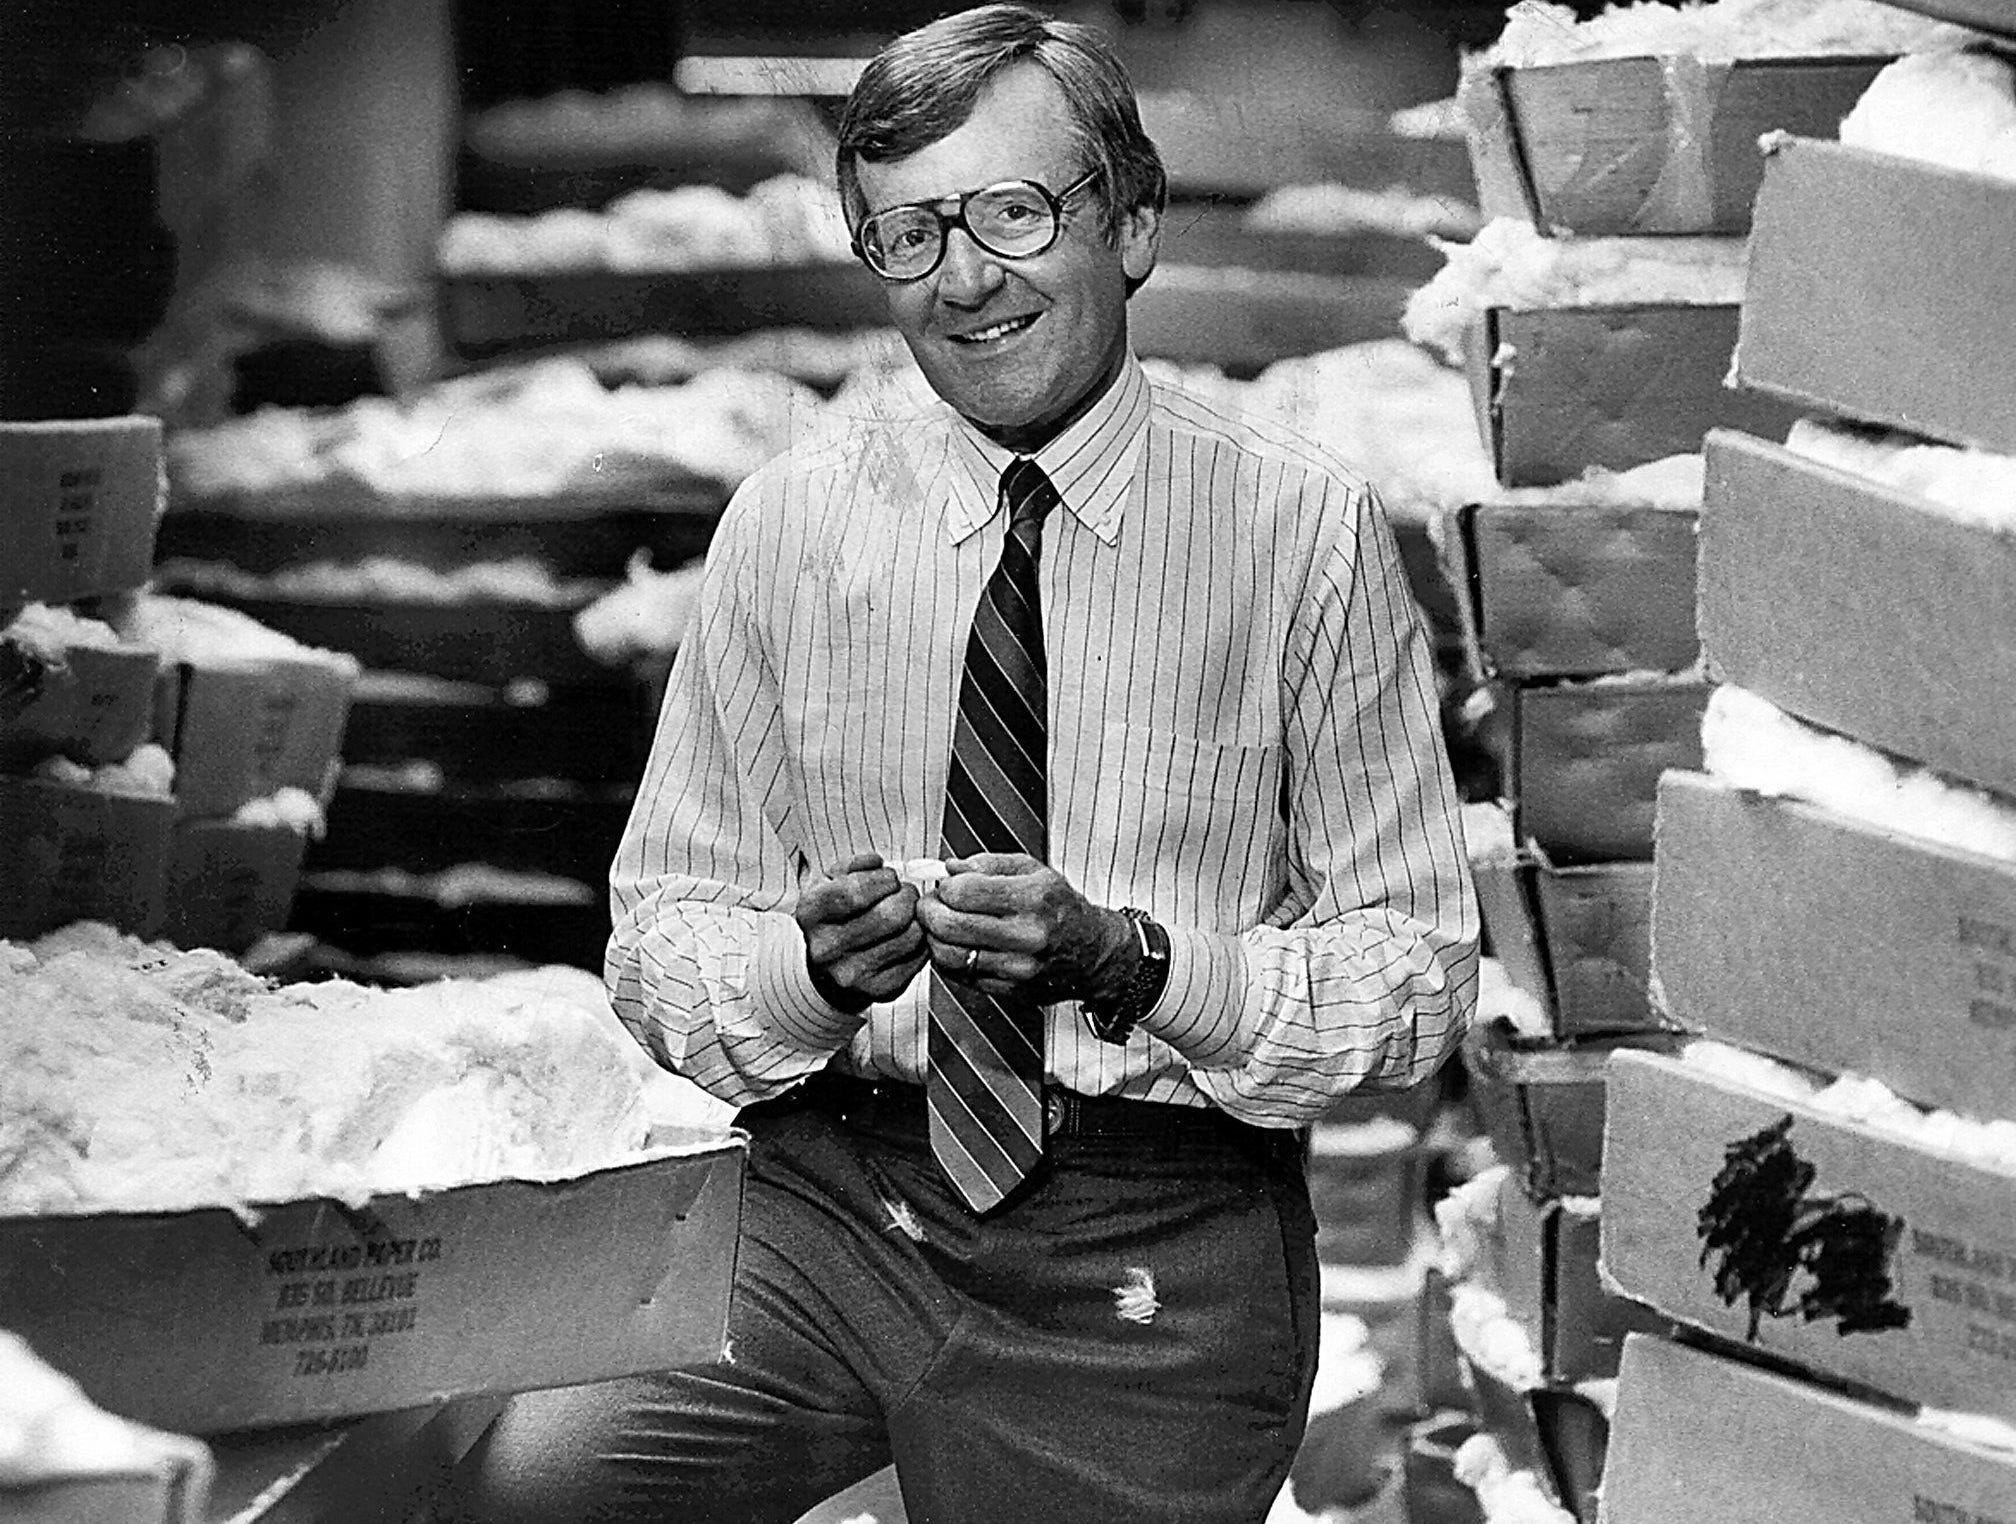 Cotton merchant Billy Dunavant in the classing room on 17 Jan 1984.